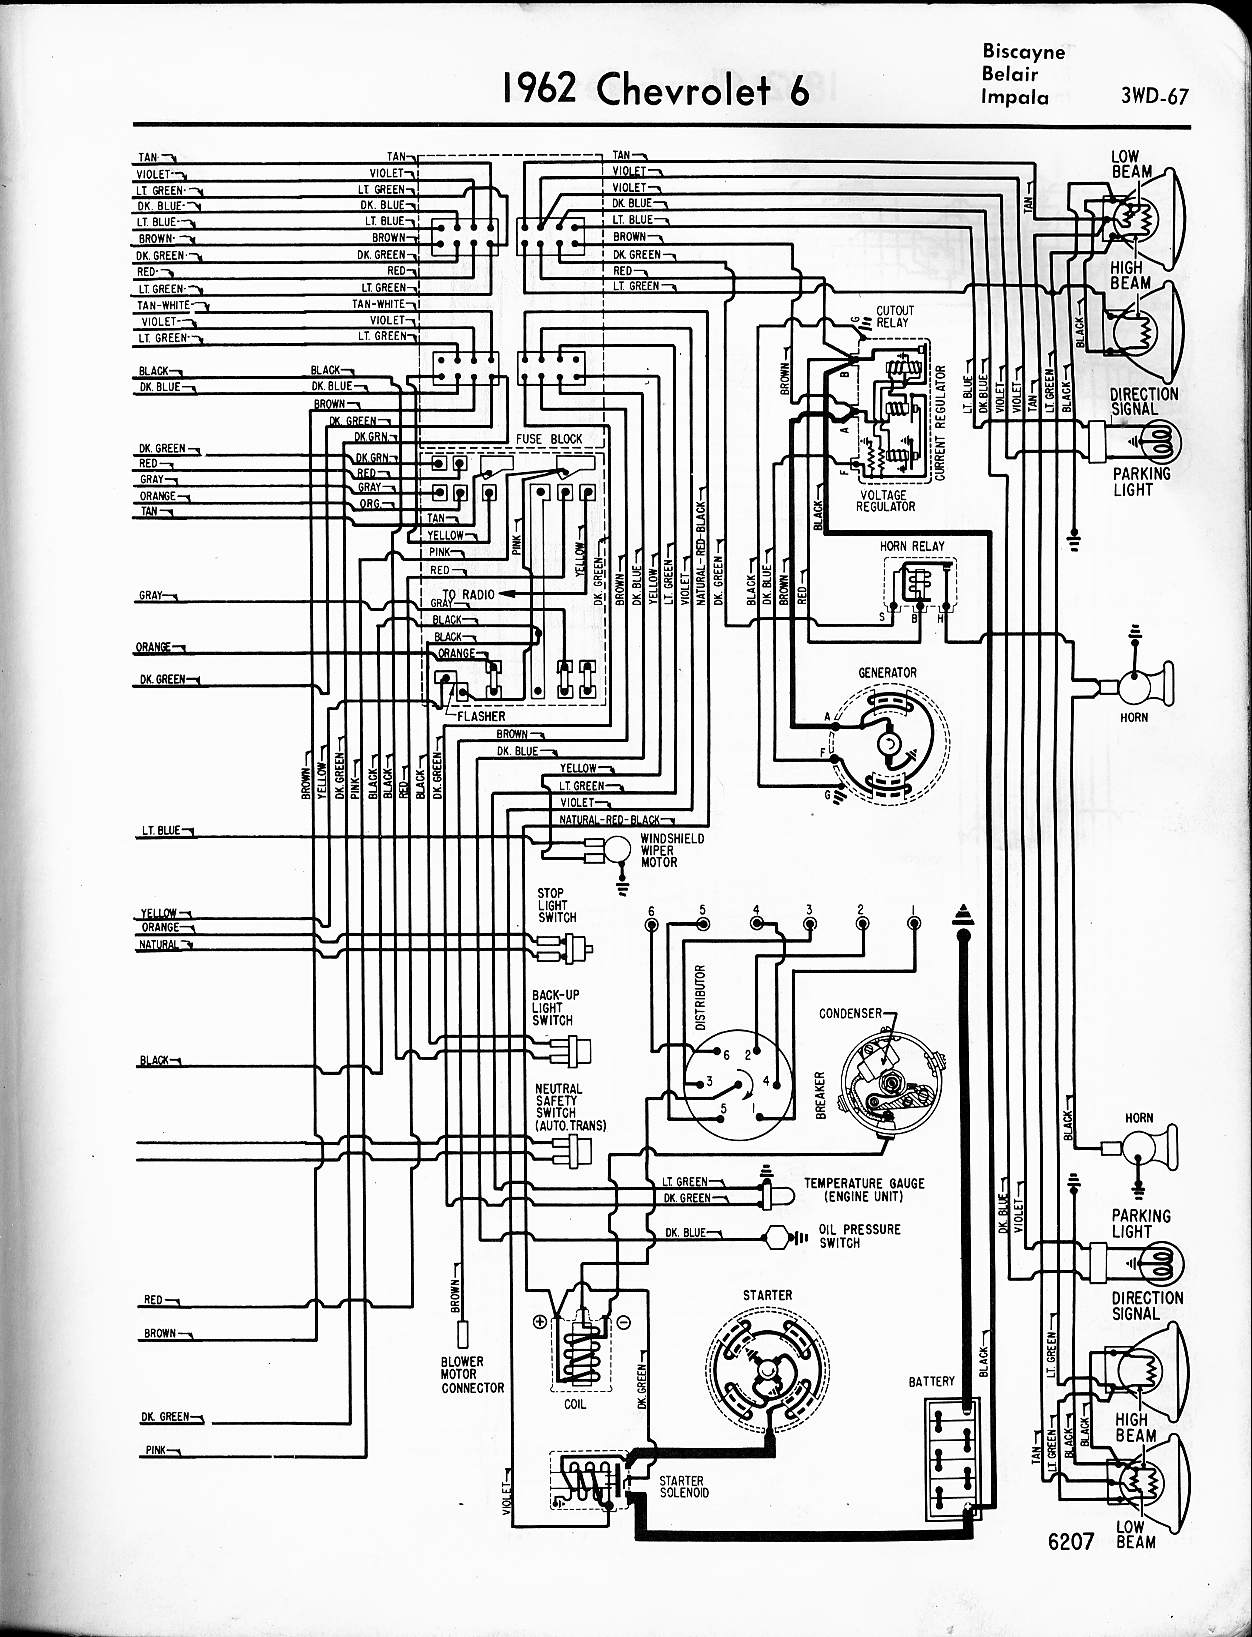 MWireChev62_3WD 067 57 65 chevy wiring diagrams 1962 impala wiring diagram at webbmarketing.co